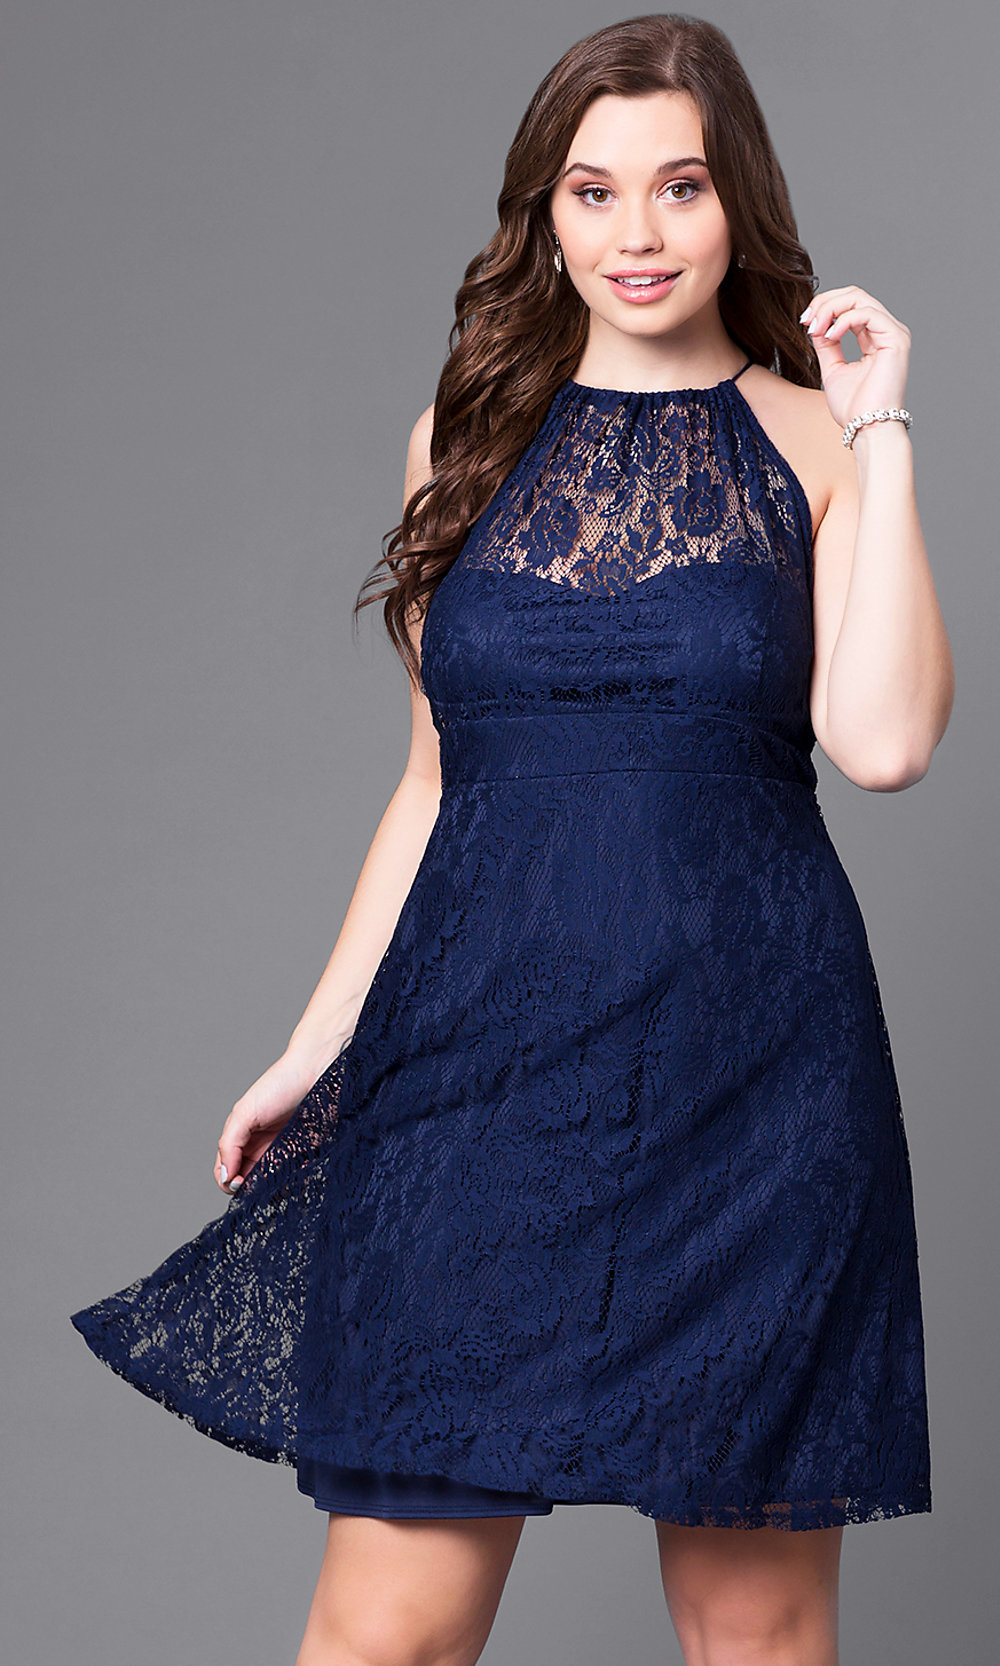 Plus Size Knee Length Party Dress In Navy Lace